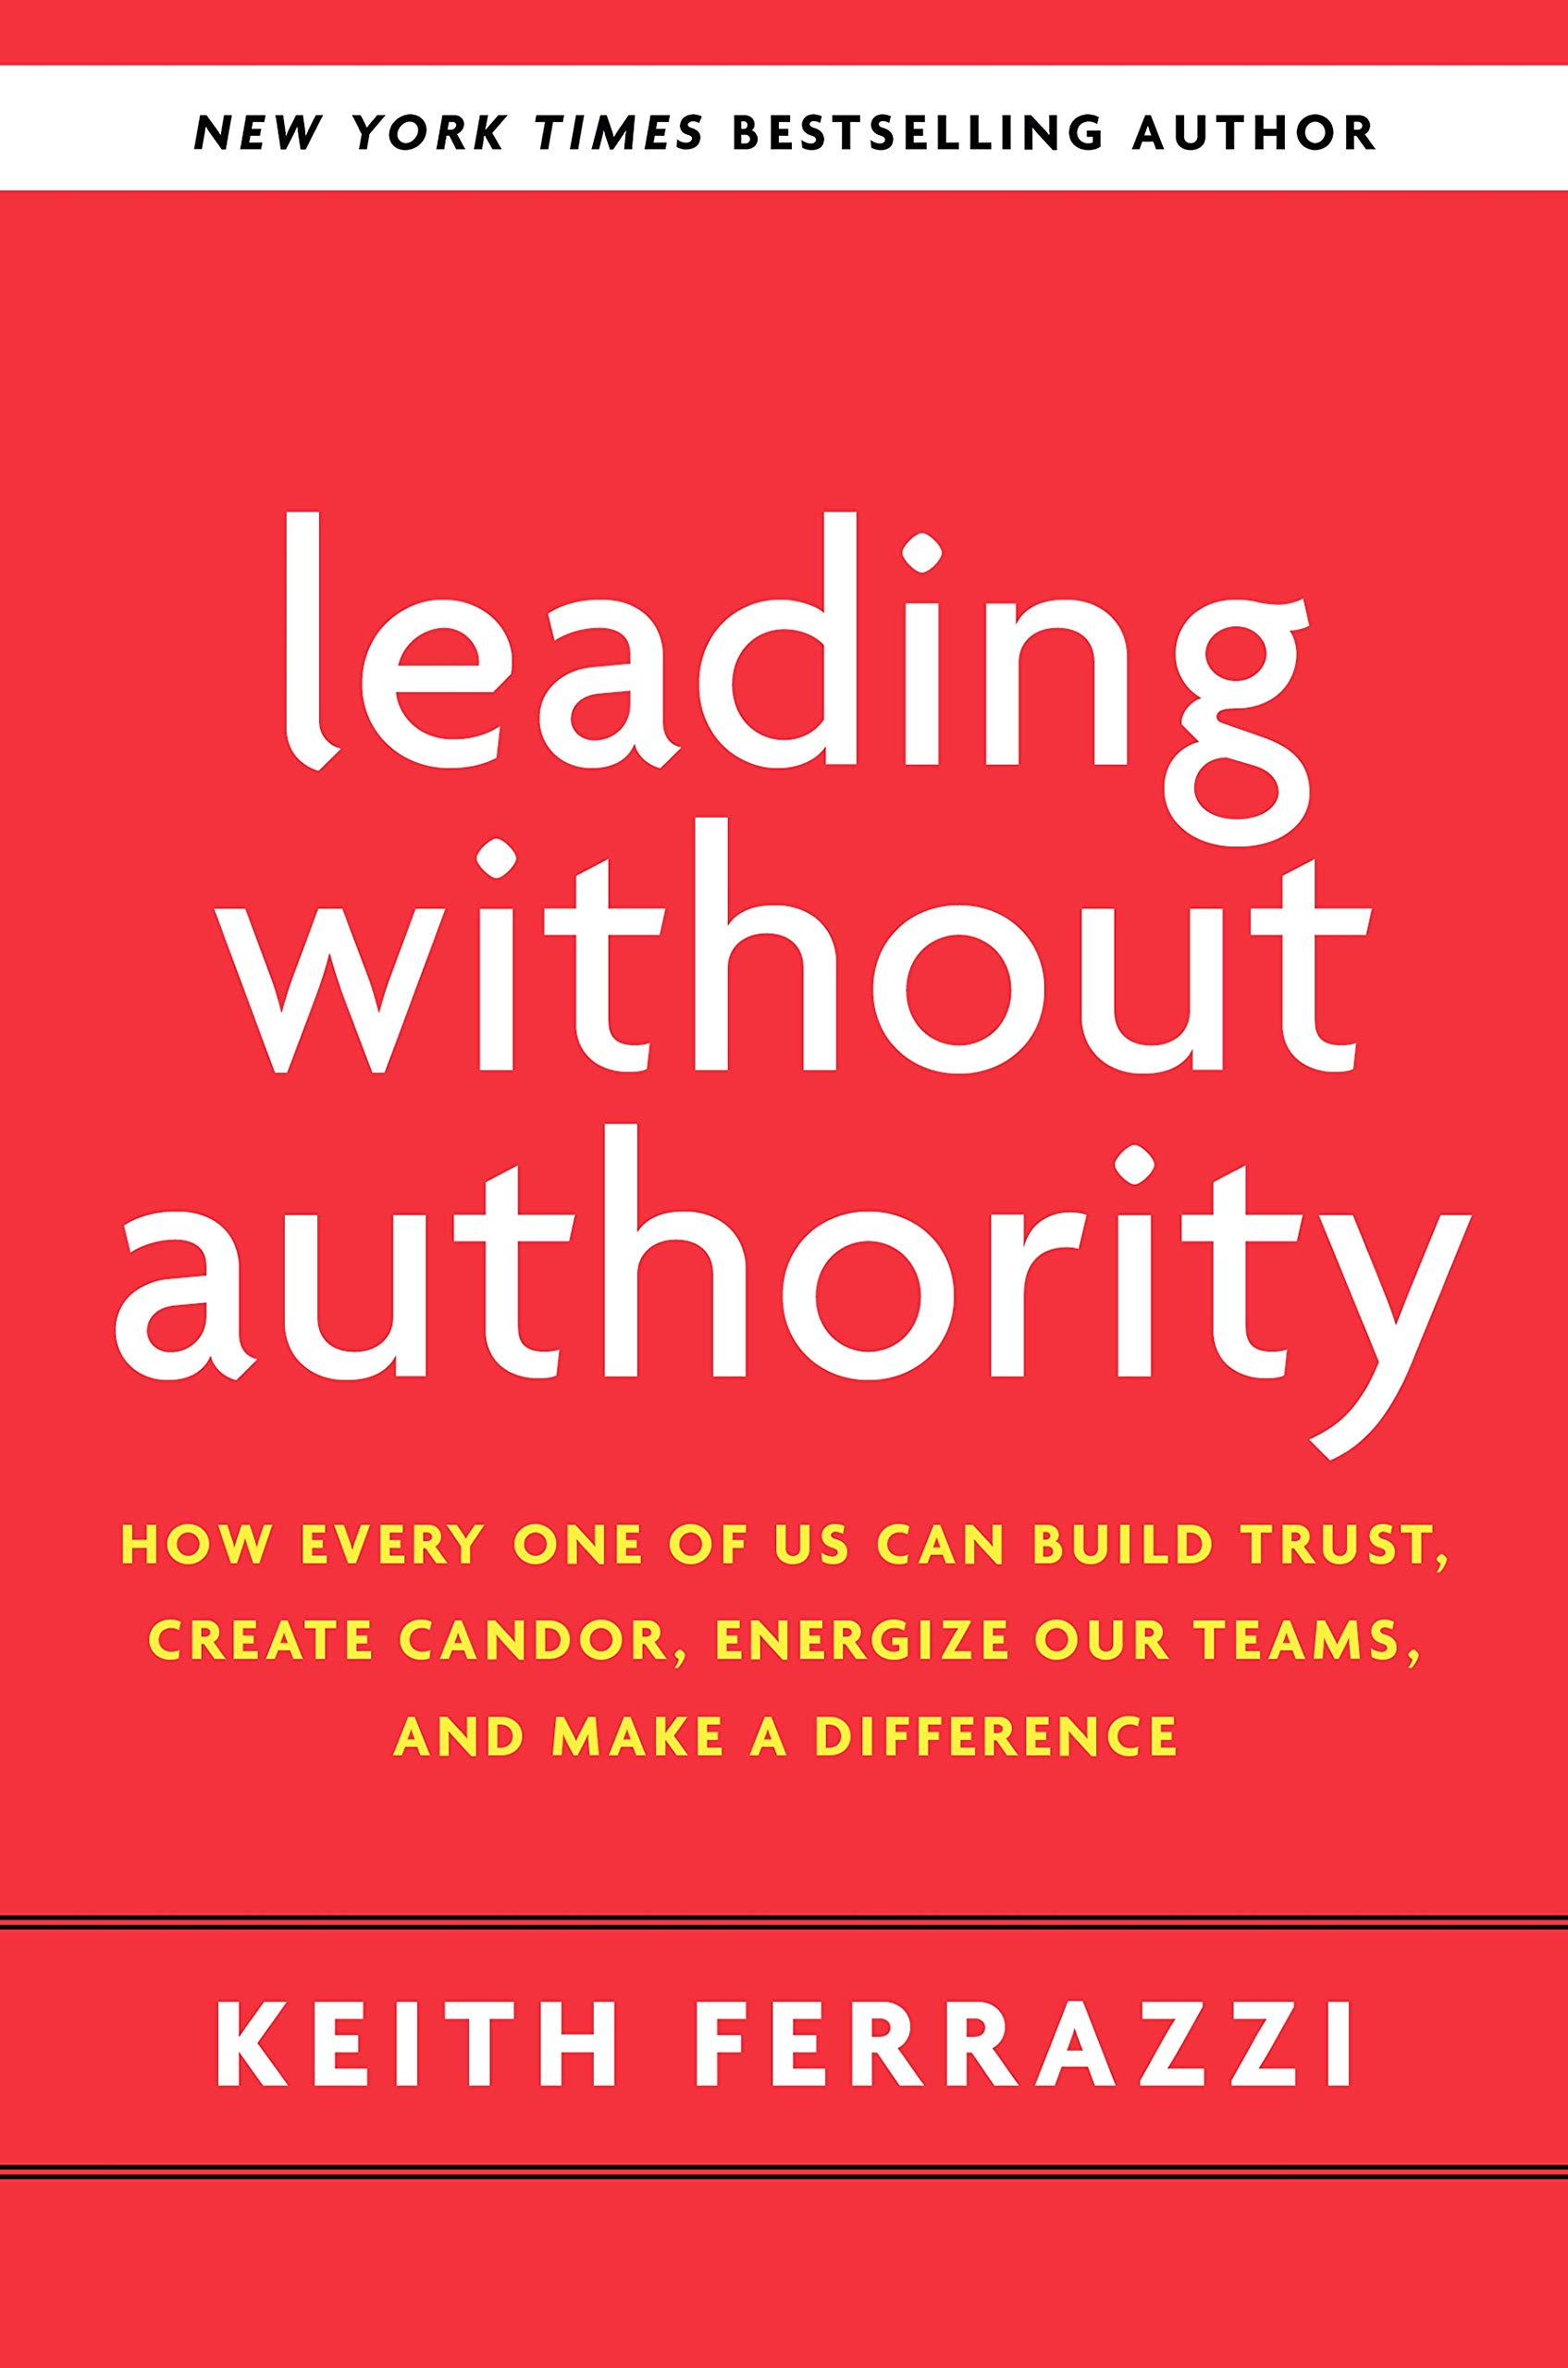 Leading Without Authority How Every One of Us Can Build Trust, Create Candor, Energize Our Teams, and Make a Difference